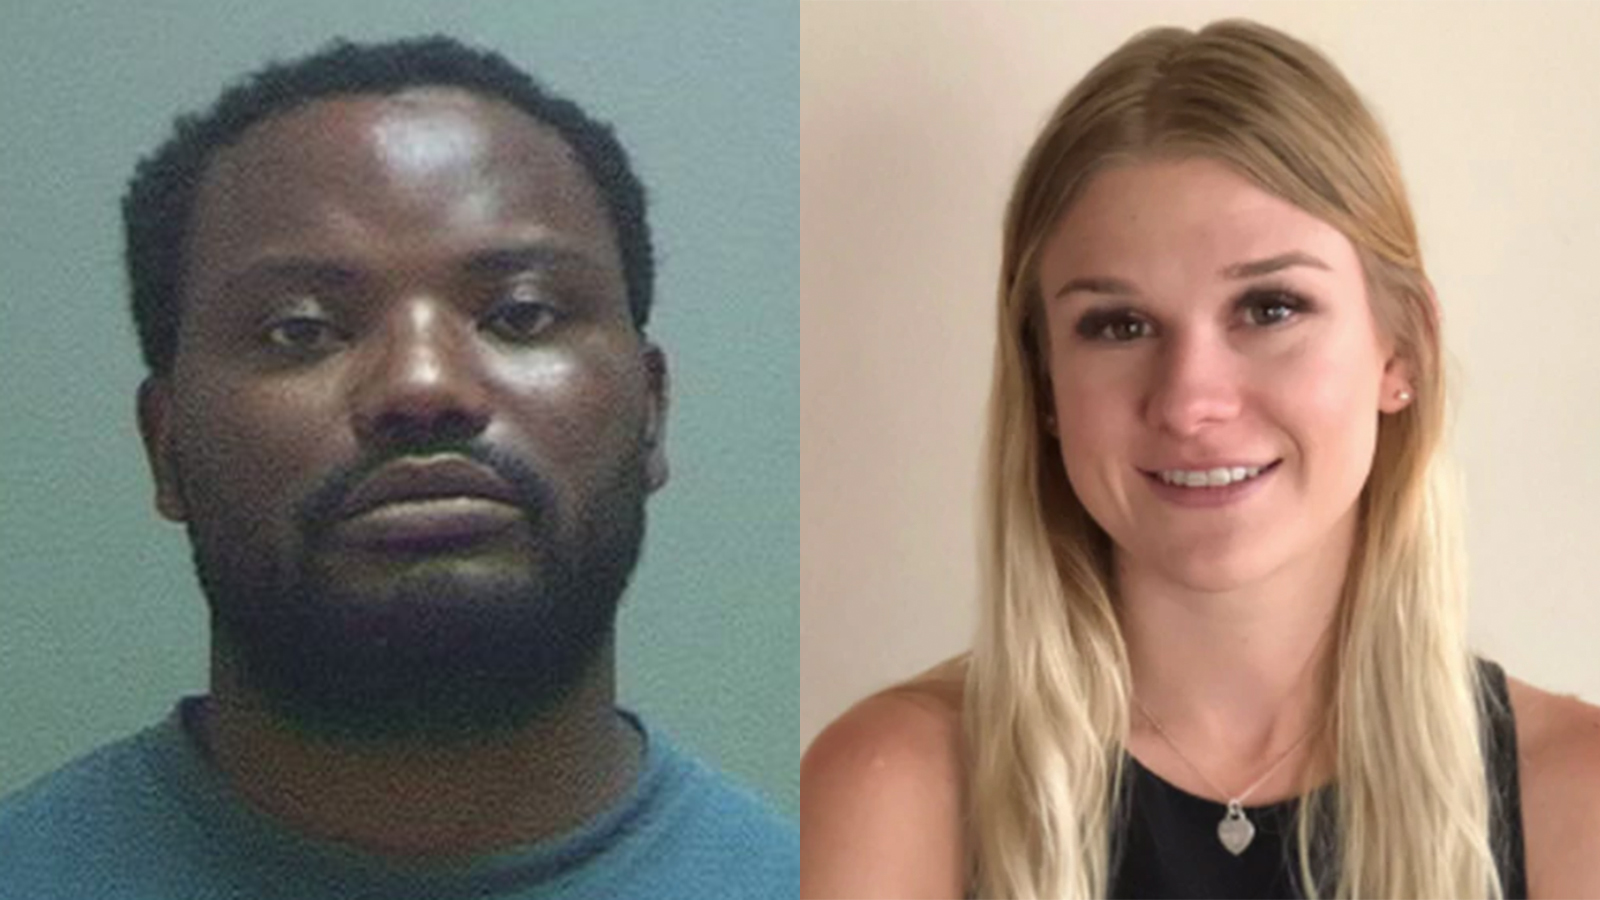 At left, Ayoola Ajayi is seen in an undated booking photo. At right, MacKenzie Lueck is seen in a photo released by Salt Lake City police in June 2019.